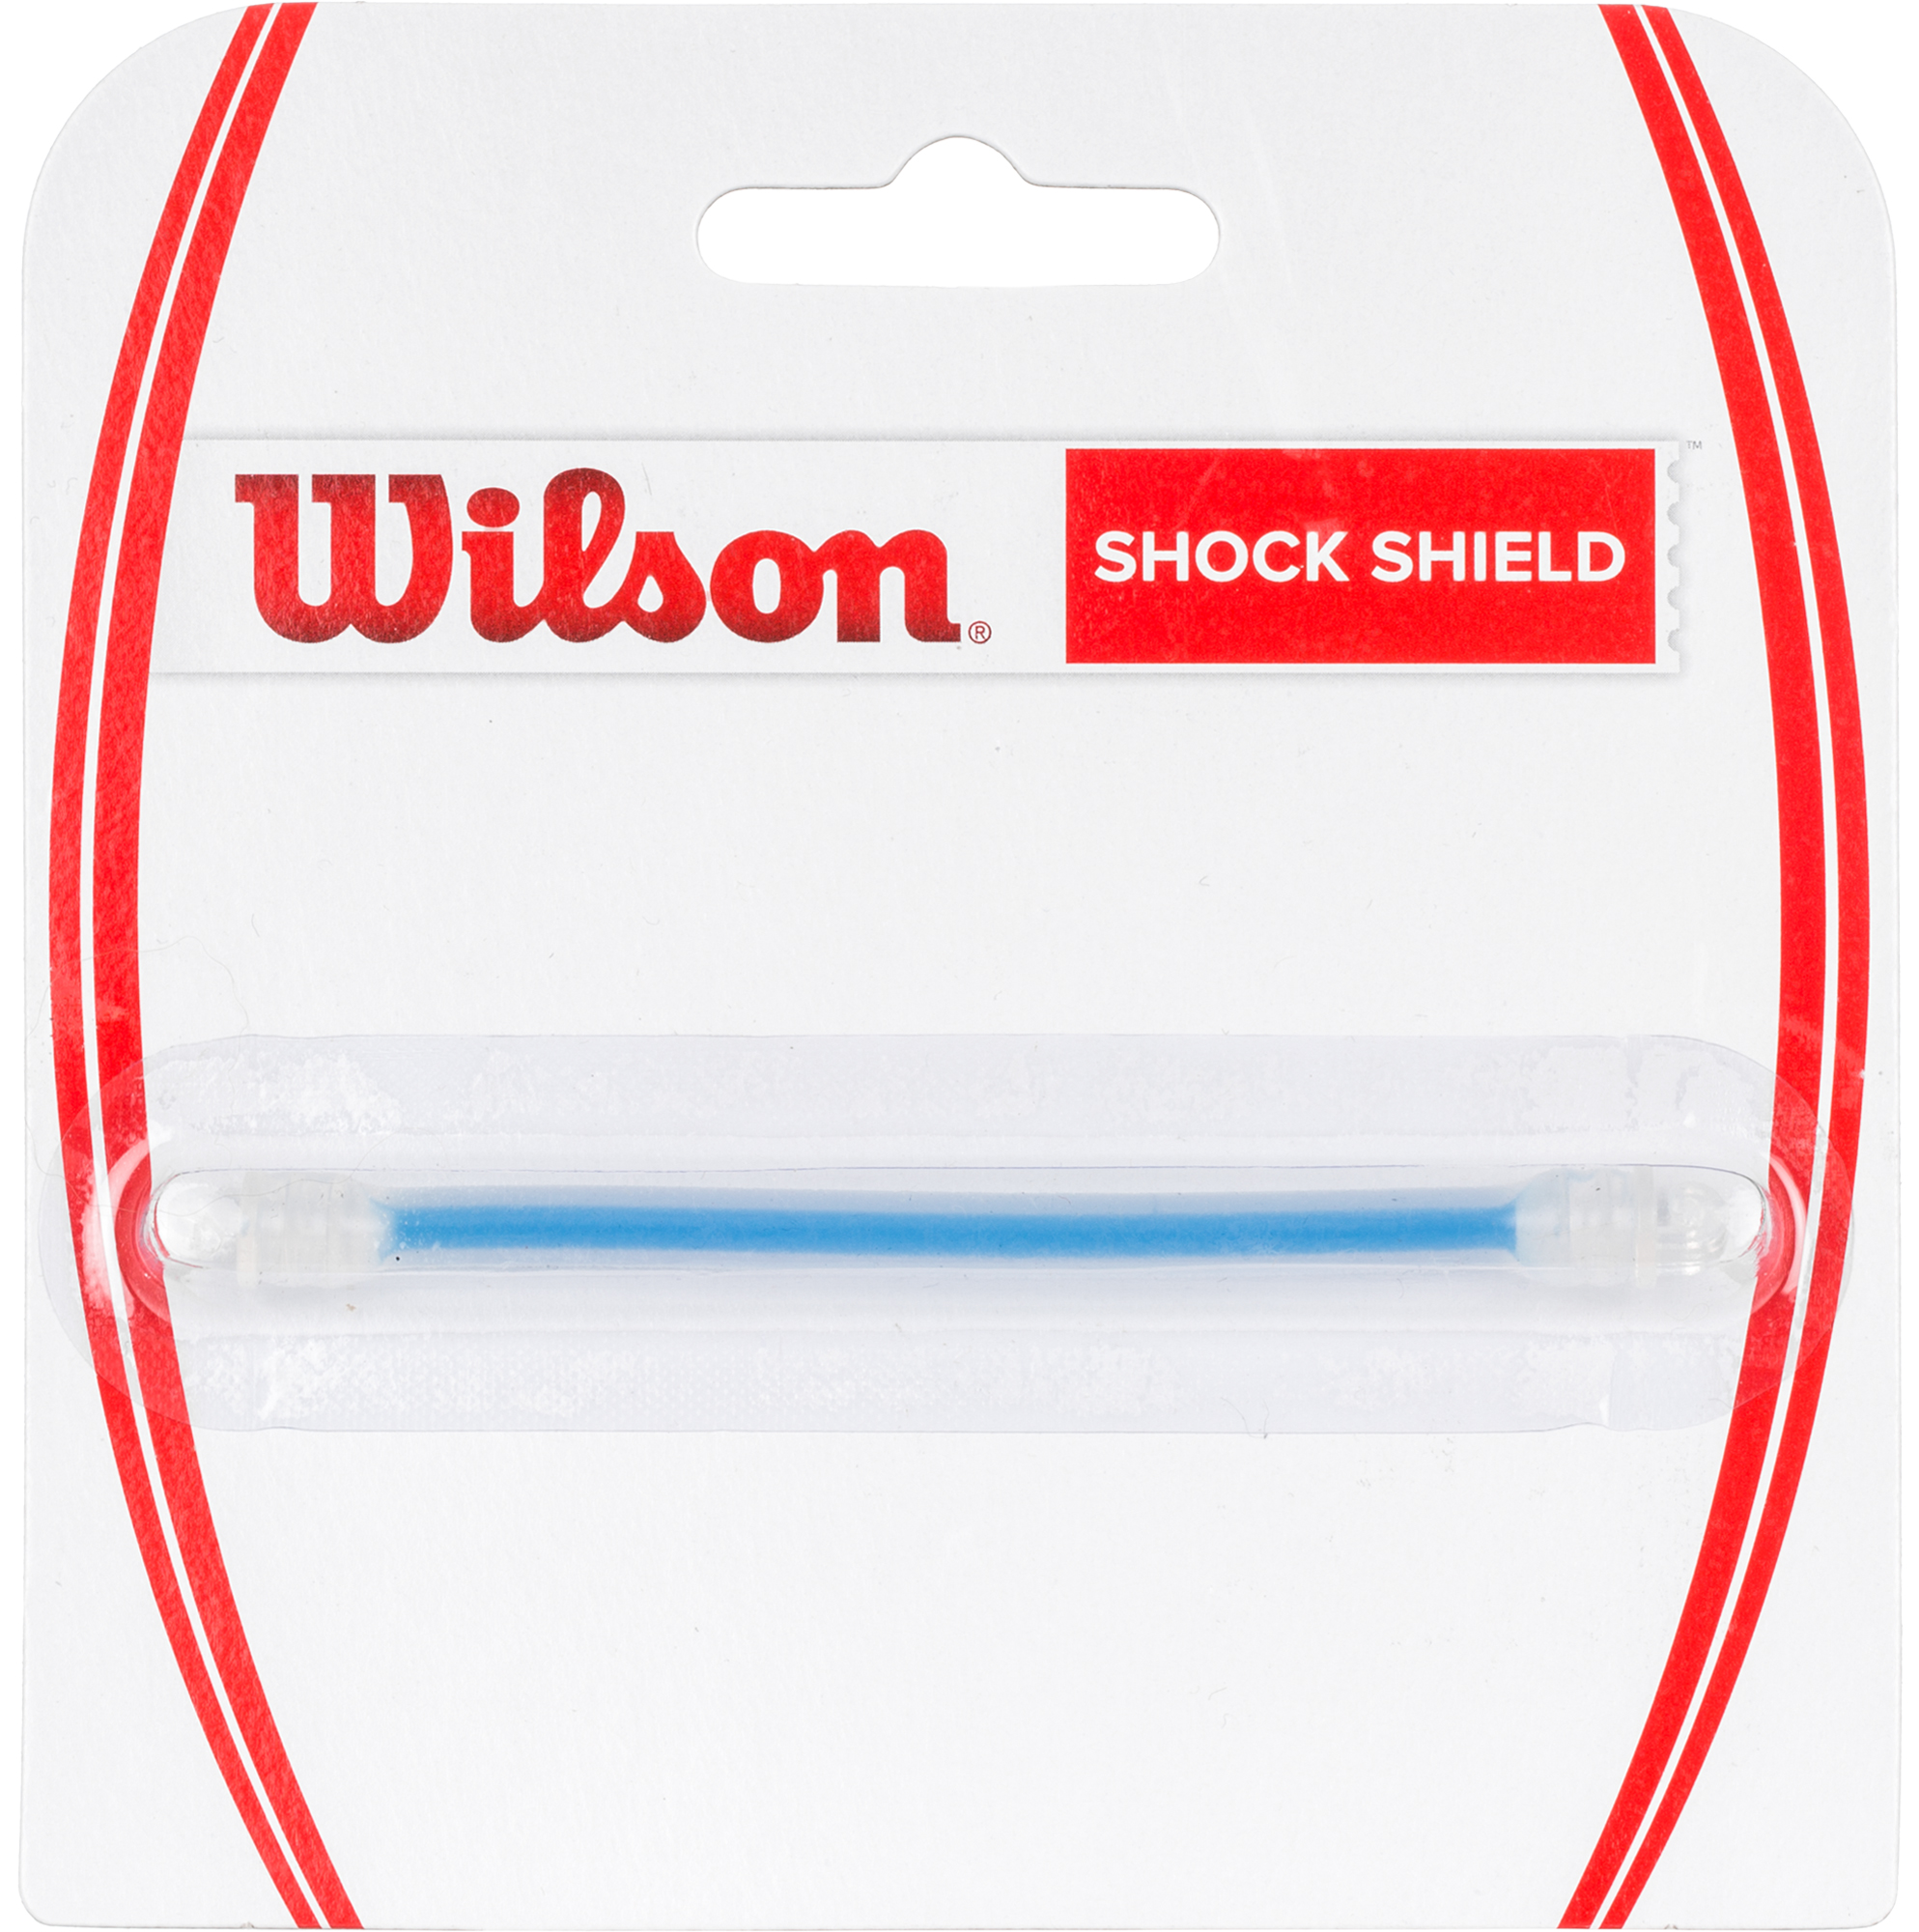 Wilson Виброгаситель Shock Shield Dampener